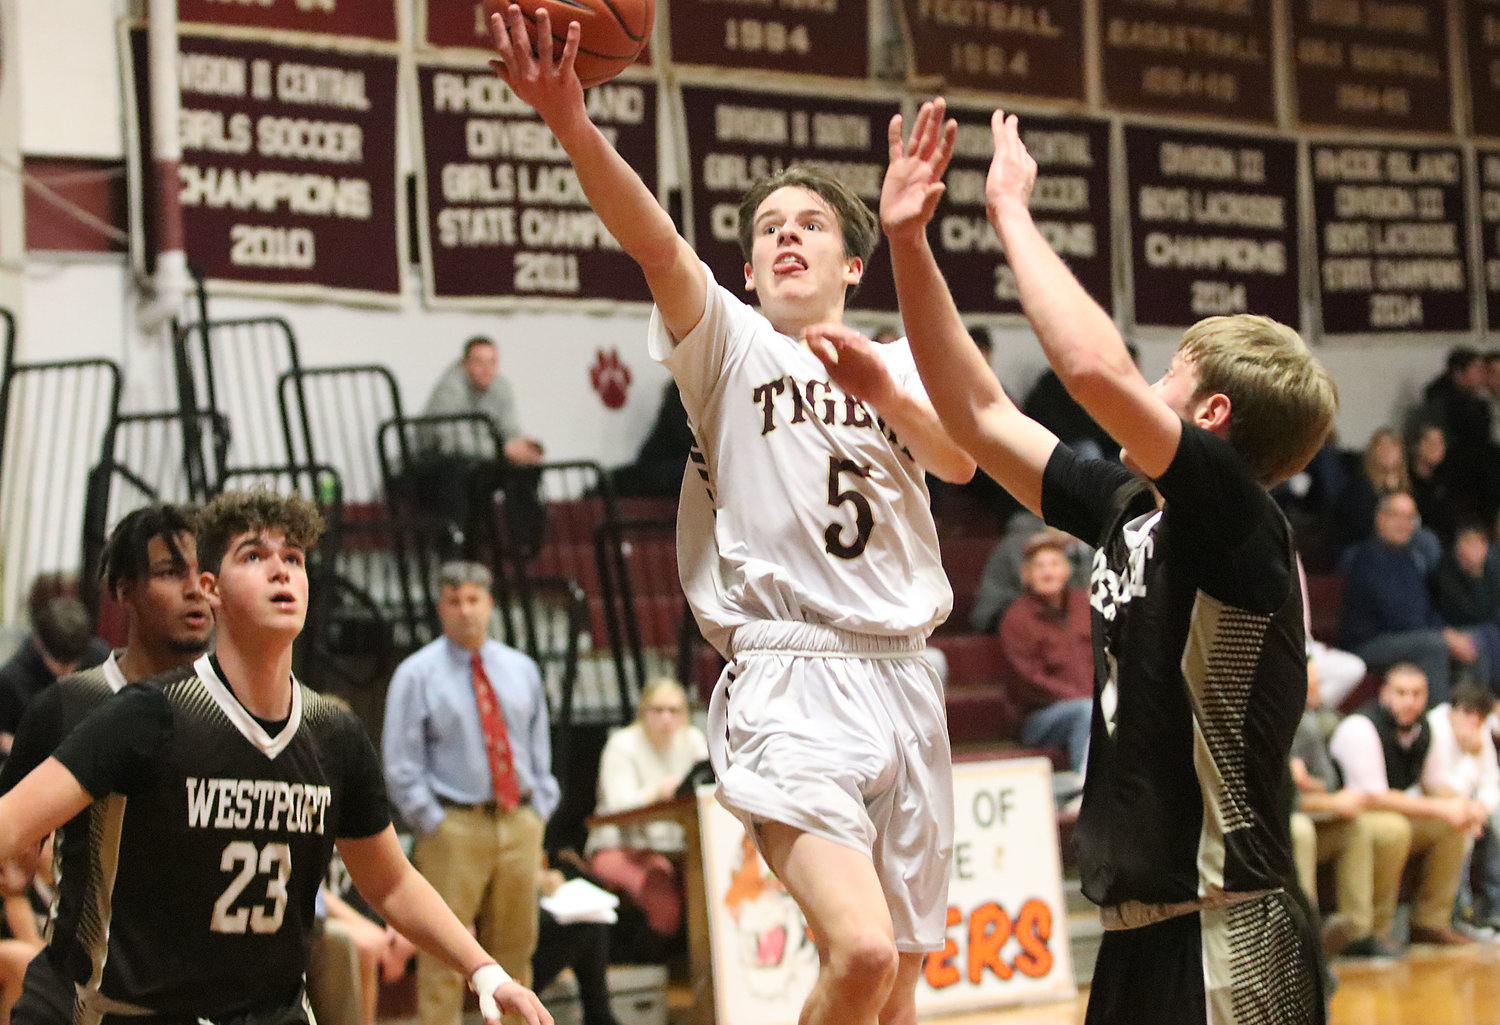 Tigers senior point guard Ryan Ennis drives for a lay up in the first half of their game against Westport at the Tiverton Holiday Tournament on Friday night. The Tigers won the game 50-49.